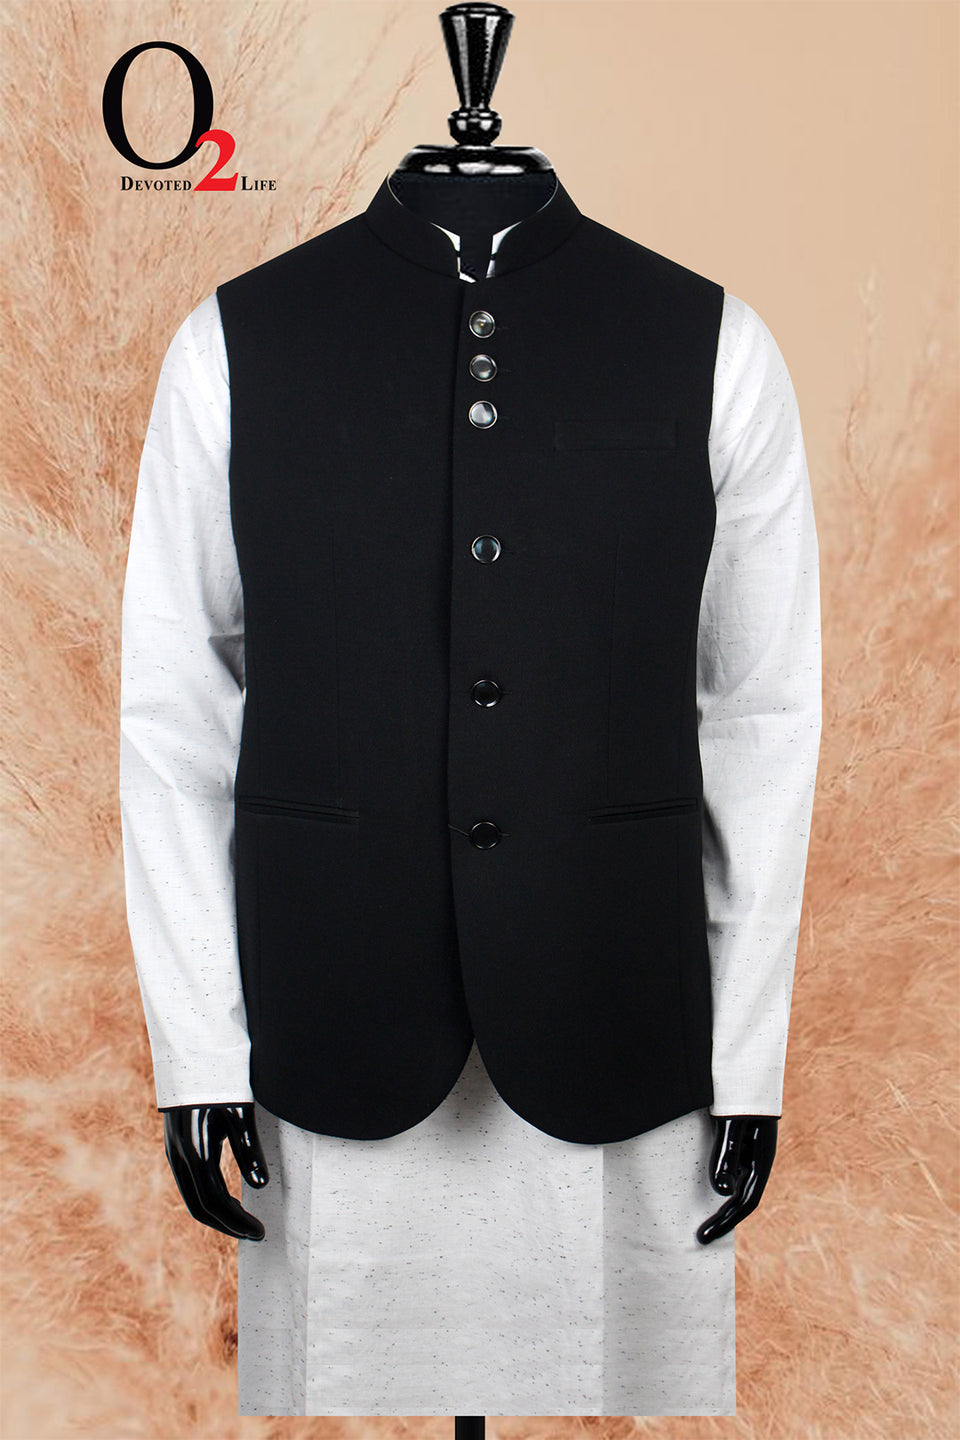 White Cotton Ekushe Panjabi with Mujib Black Vest